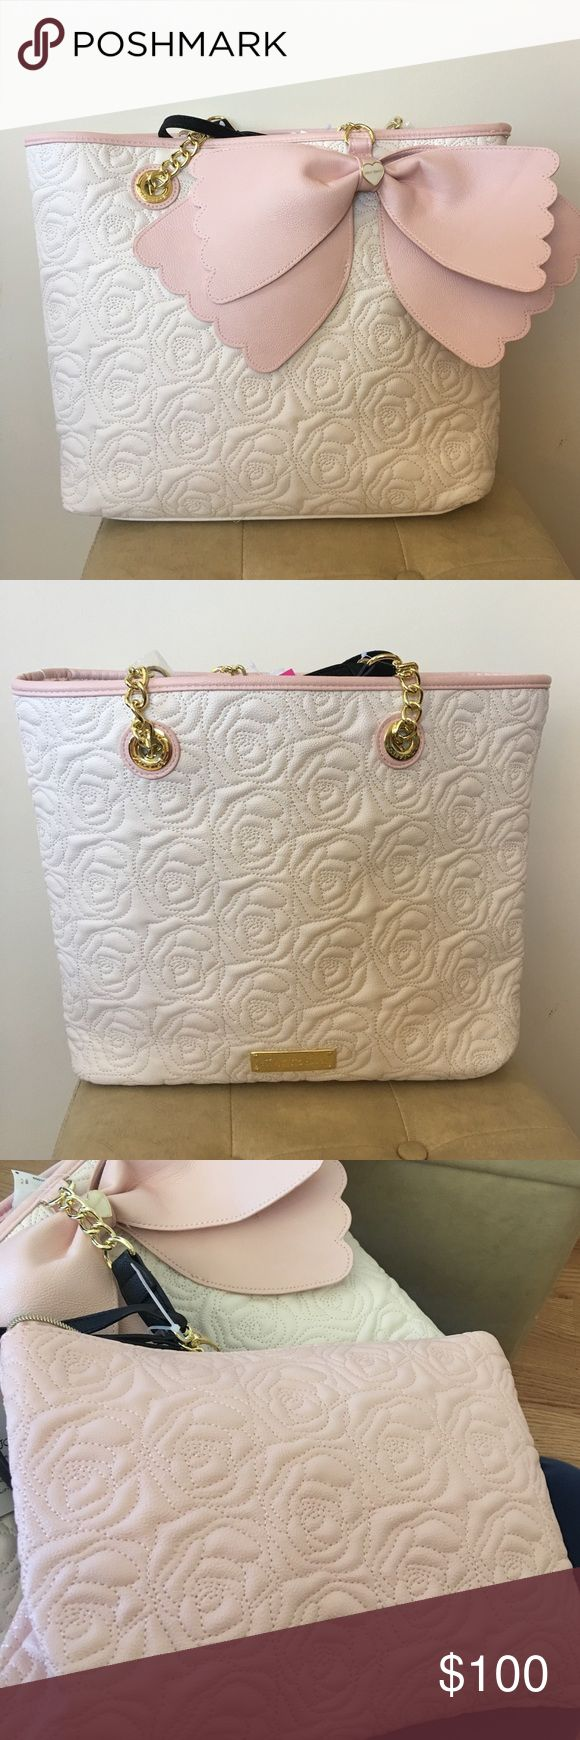 Betsey Johnson blush and cream / off white purse Betsey Johnson blush and cream / off white purse. Cute bow. NWT. Includes second bag - removable ouch with wristlet strap! Super cute and feminine. Perfect for spring! Betsey Johnson Bags